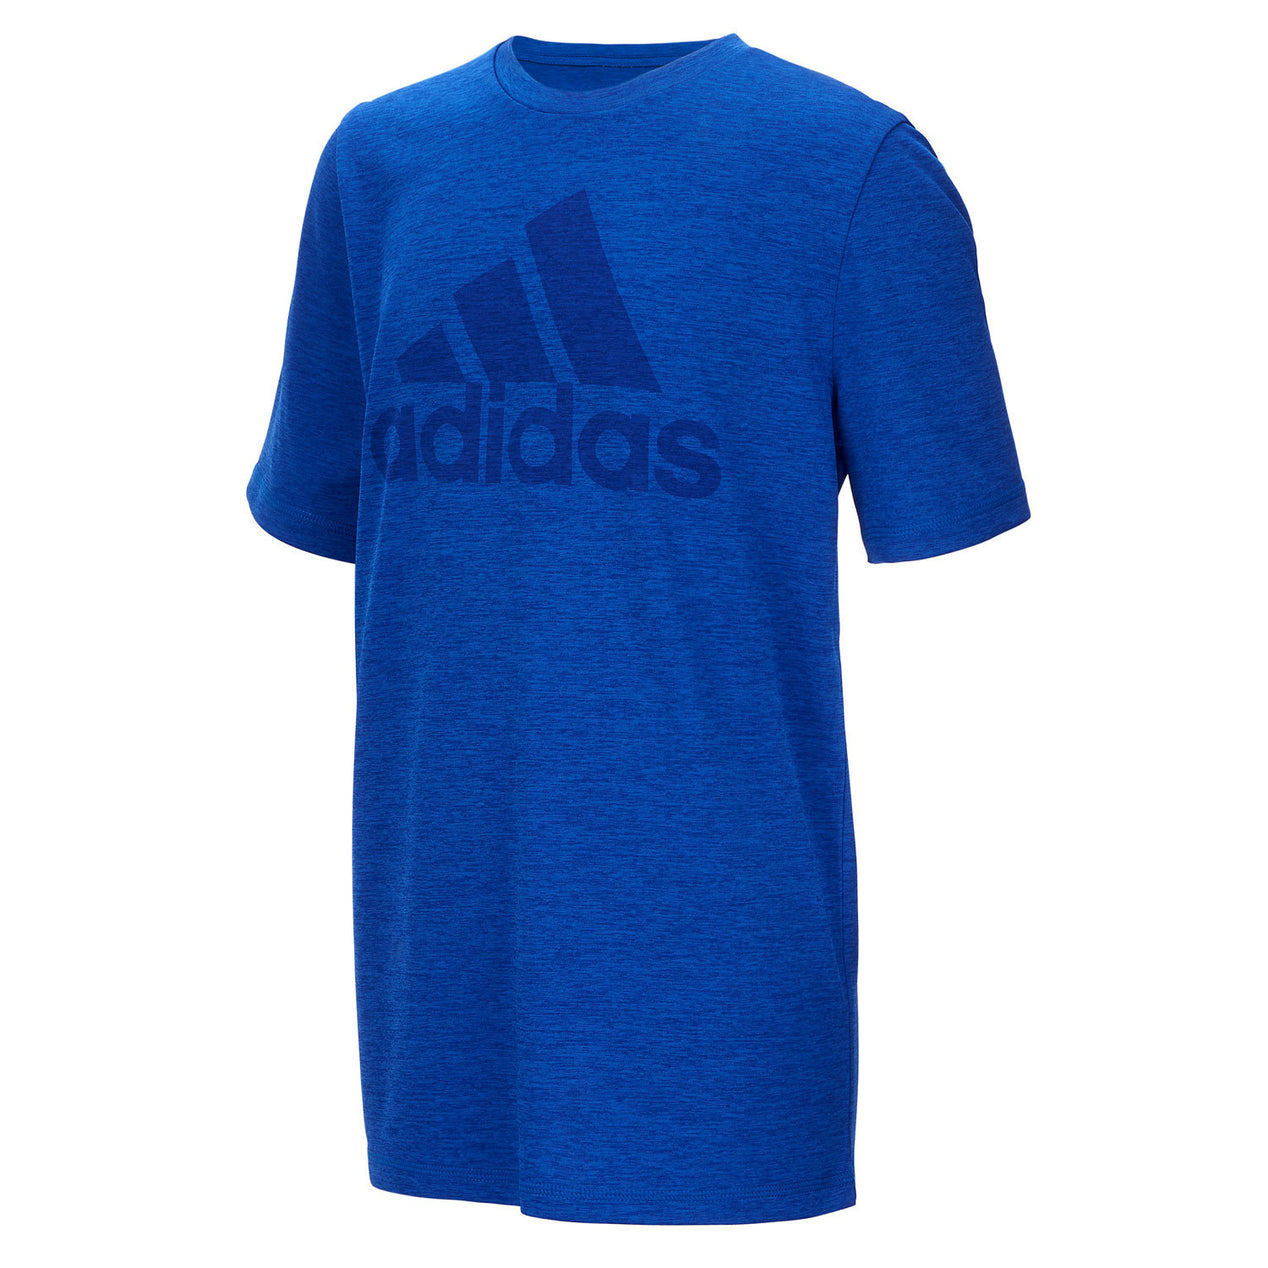 Sports onAltitude Adidas T Graphic Shirt Gar eYWD2IE9bH